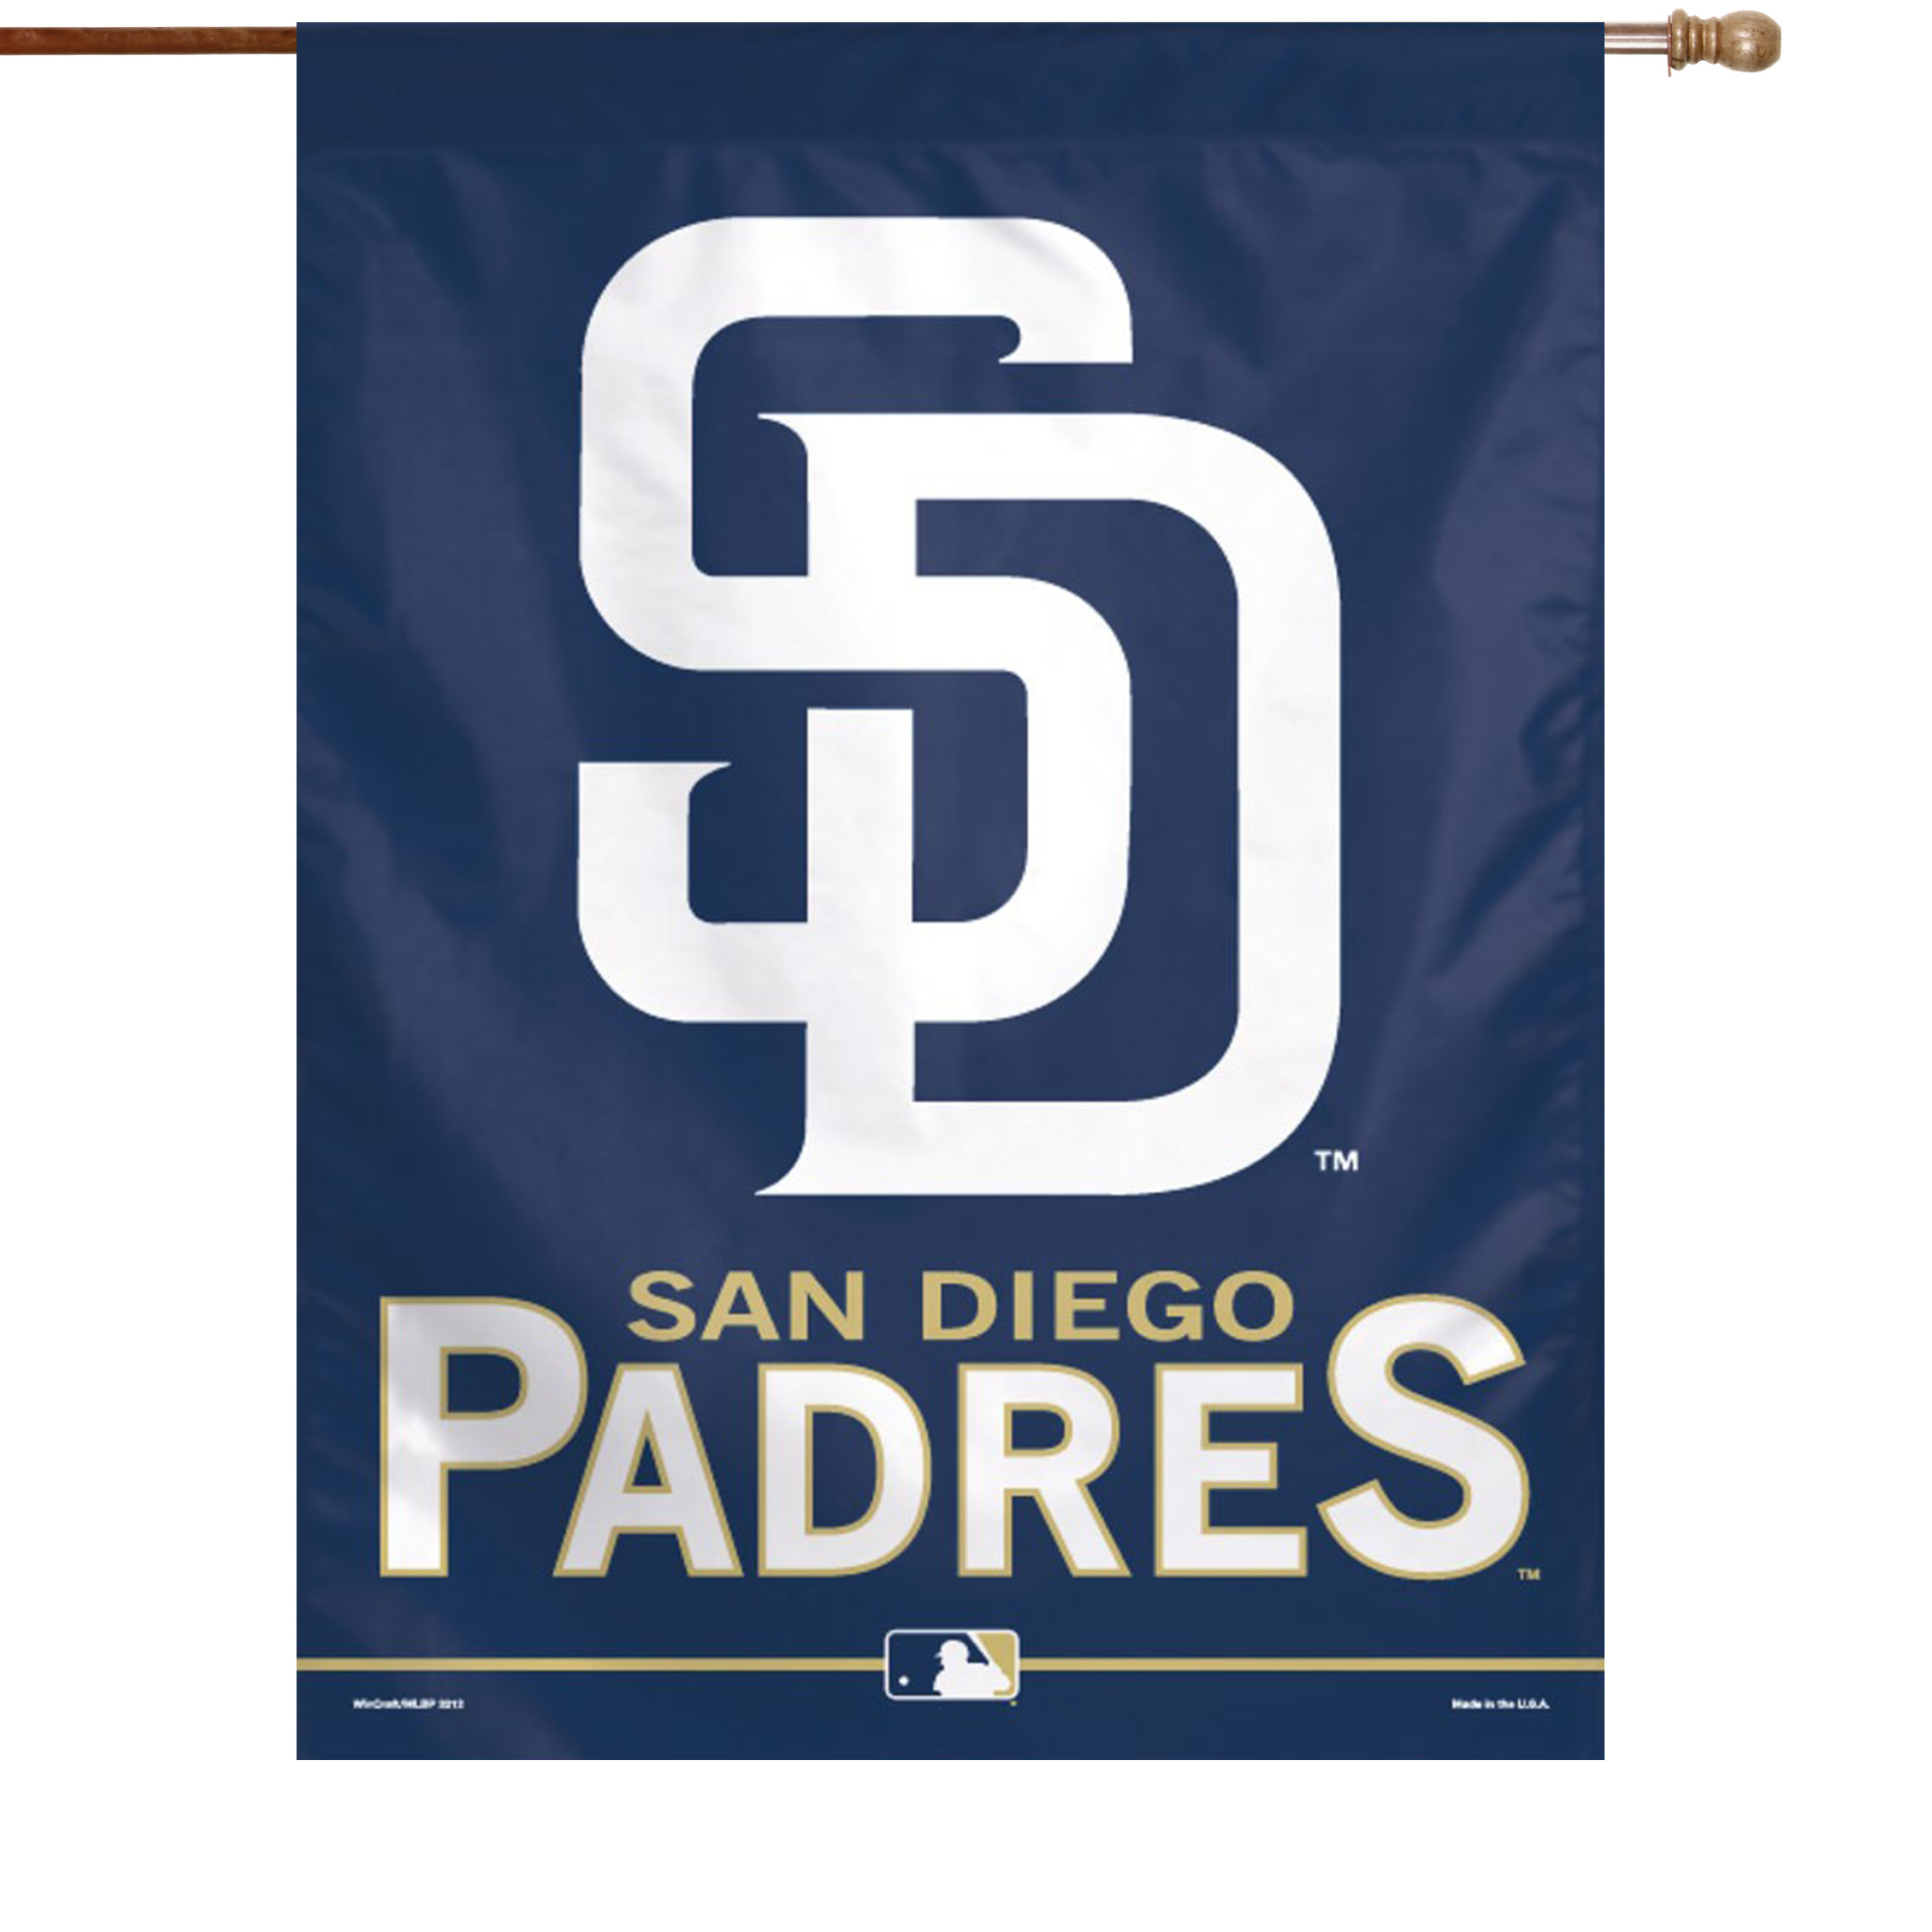 WinCraft San Diego Padres 27'' x 37'' Vertical Banner Flag - Navy Blue - No Size